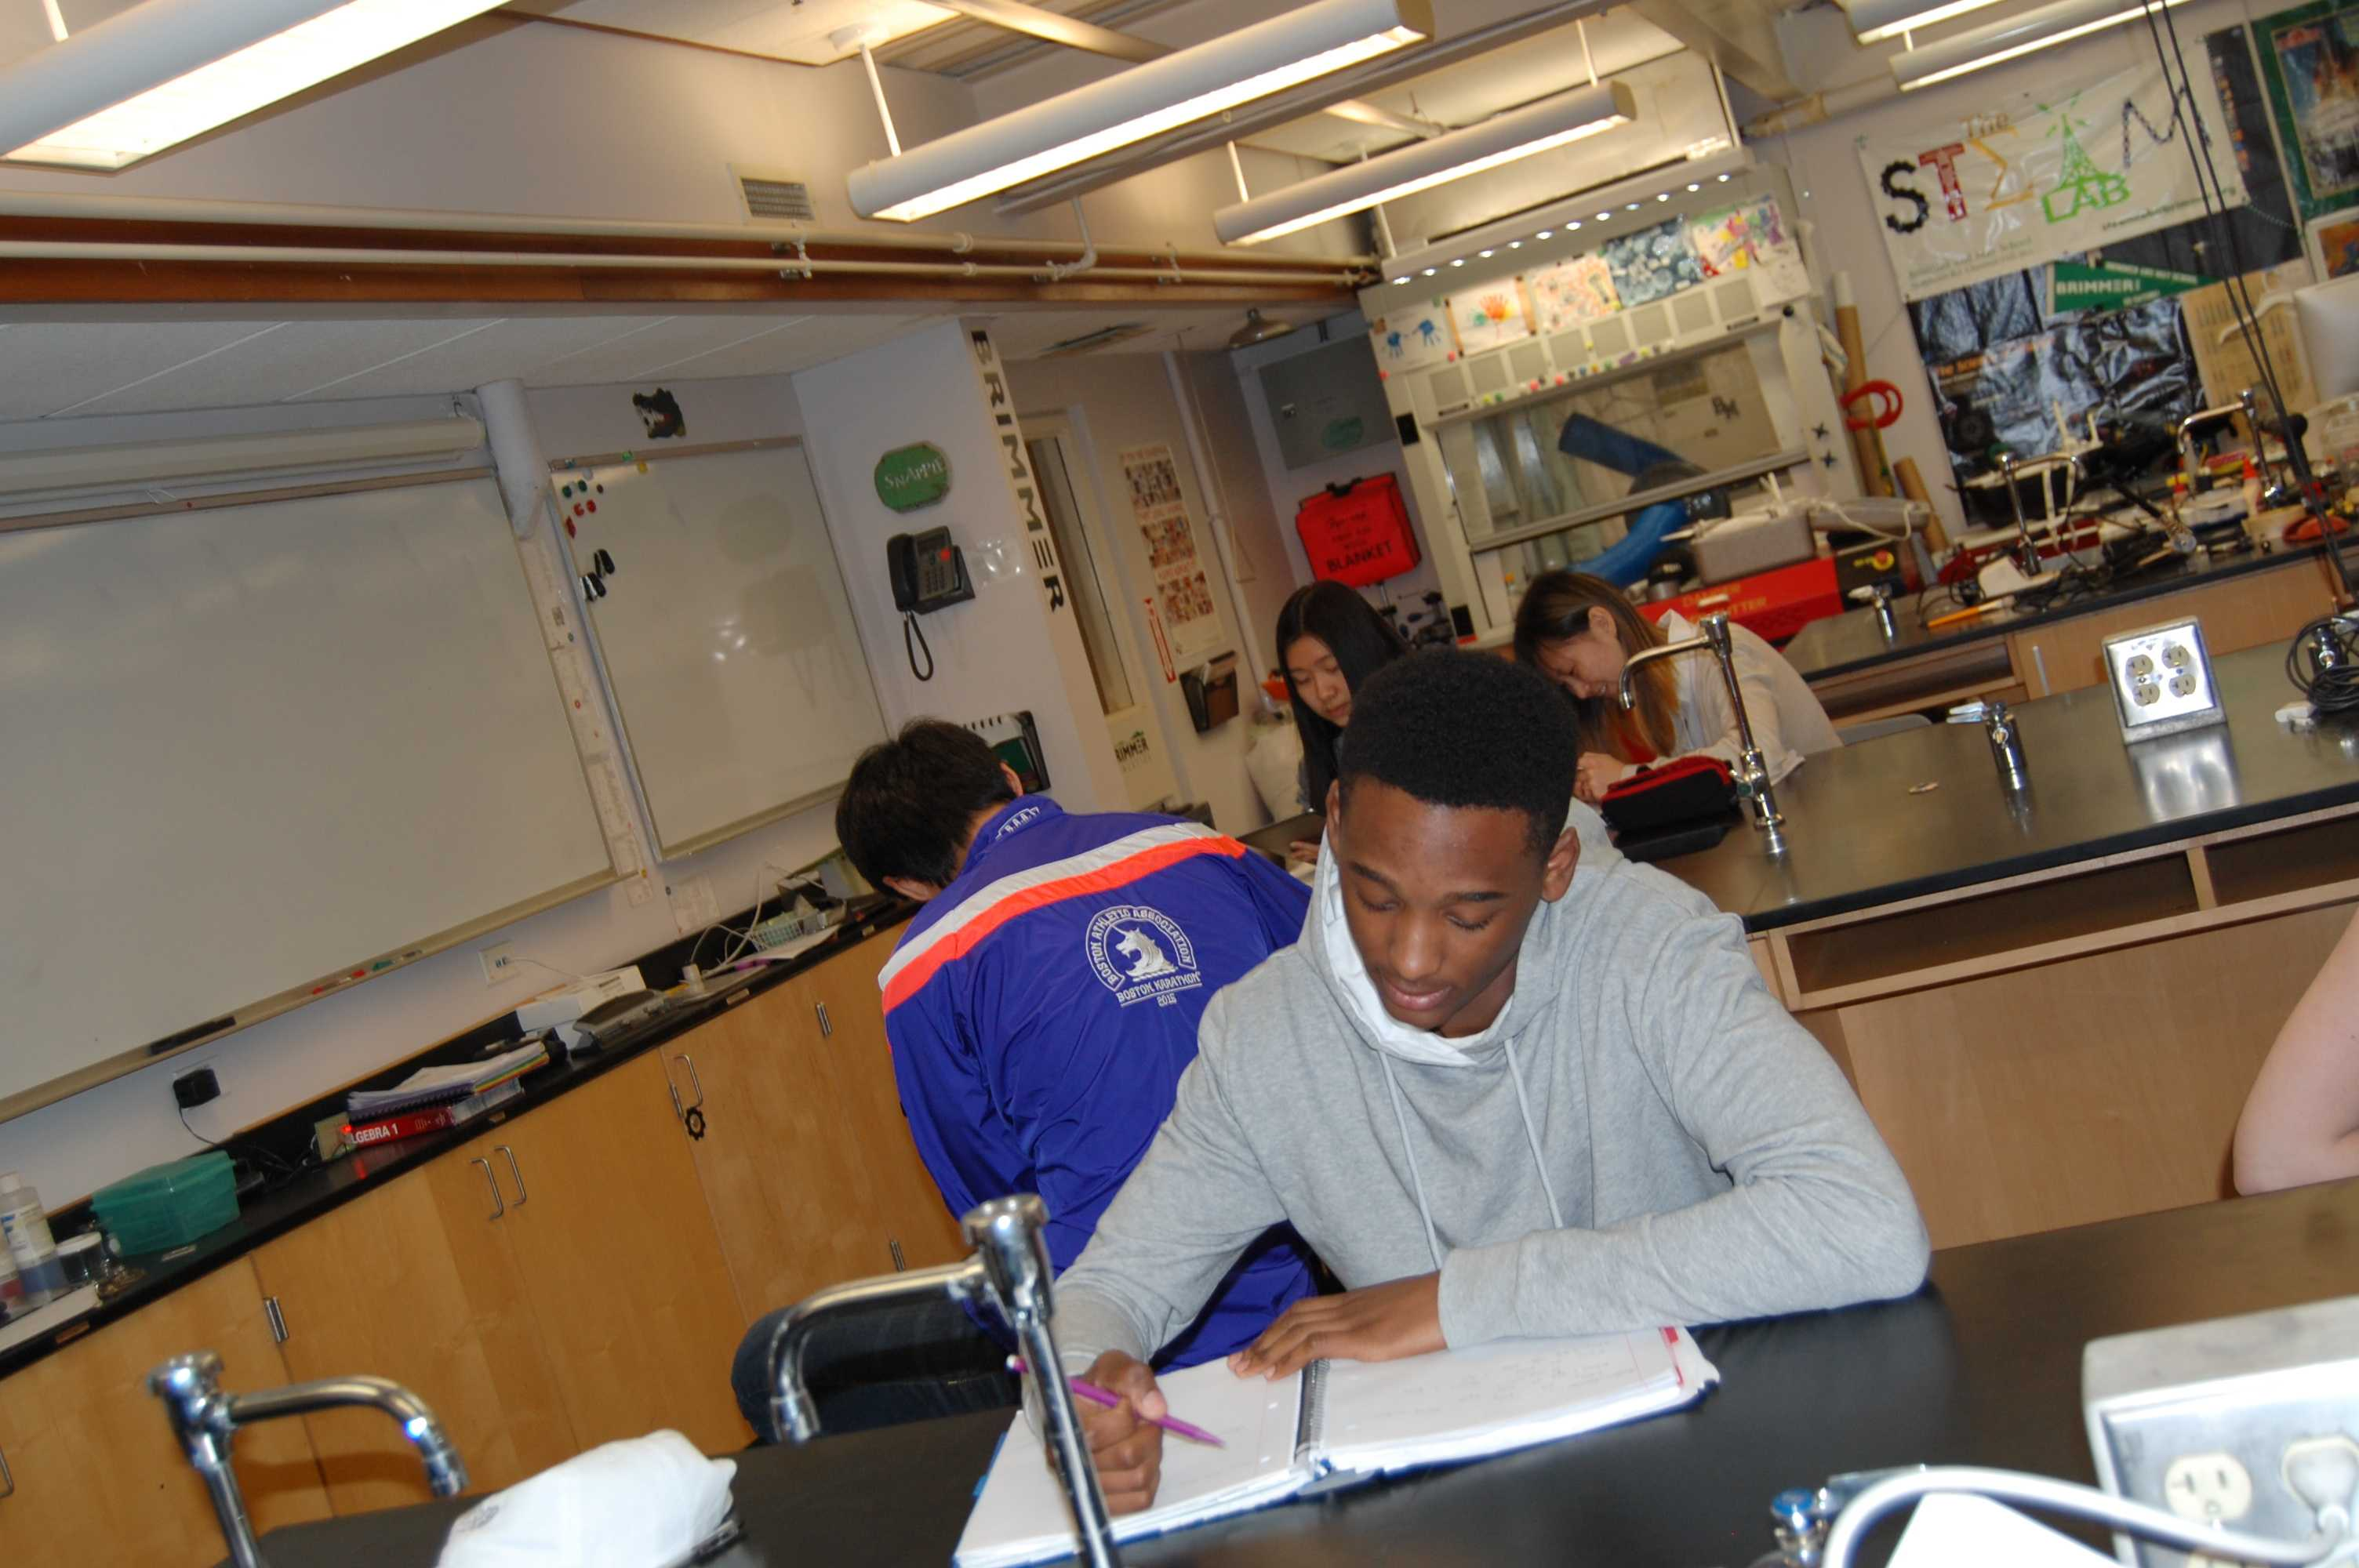 Students conduct experiments in existing science rooms. Photo by Noa Schabes '17